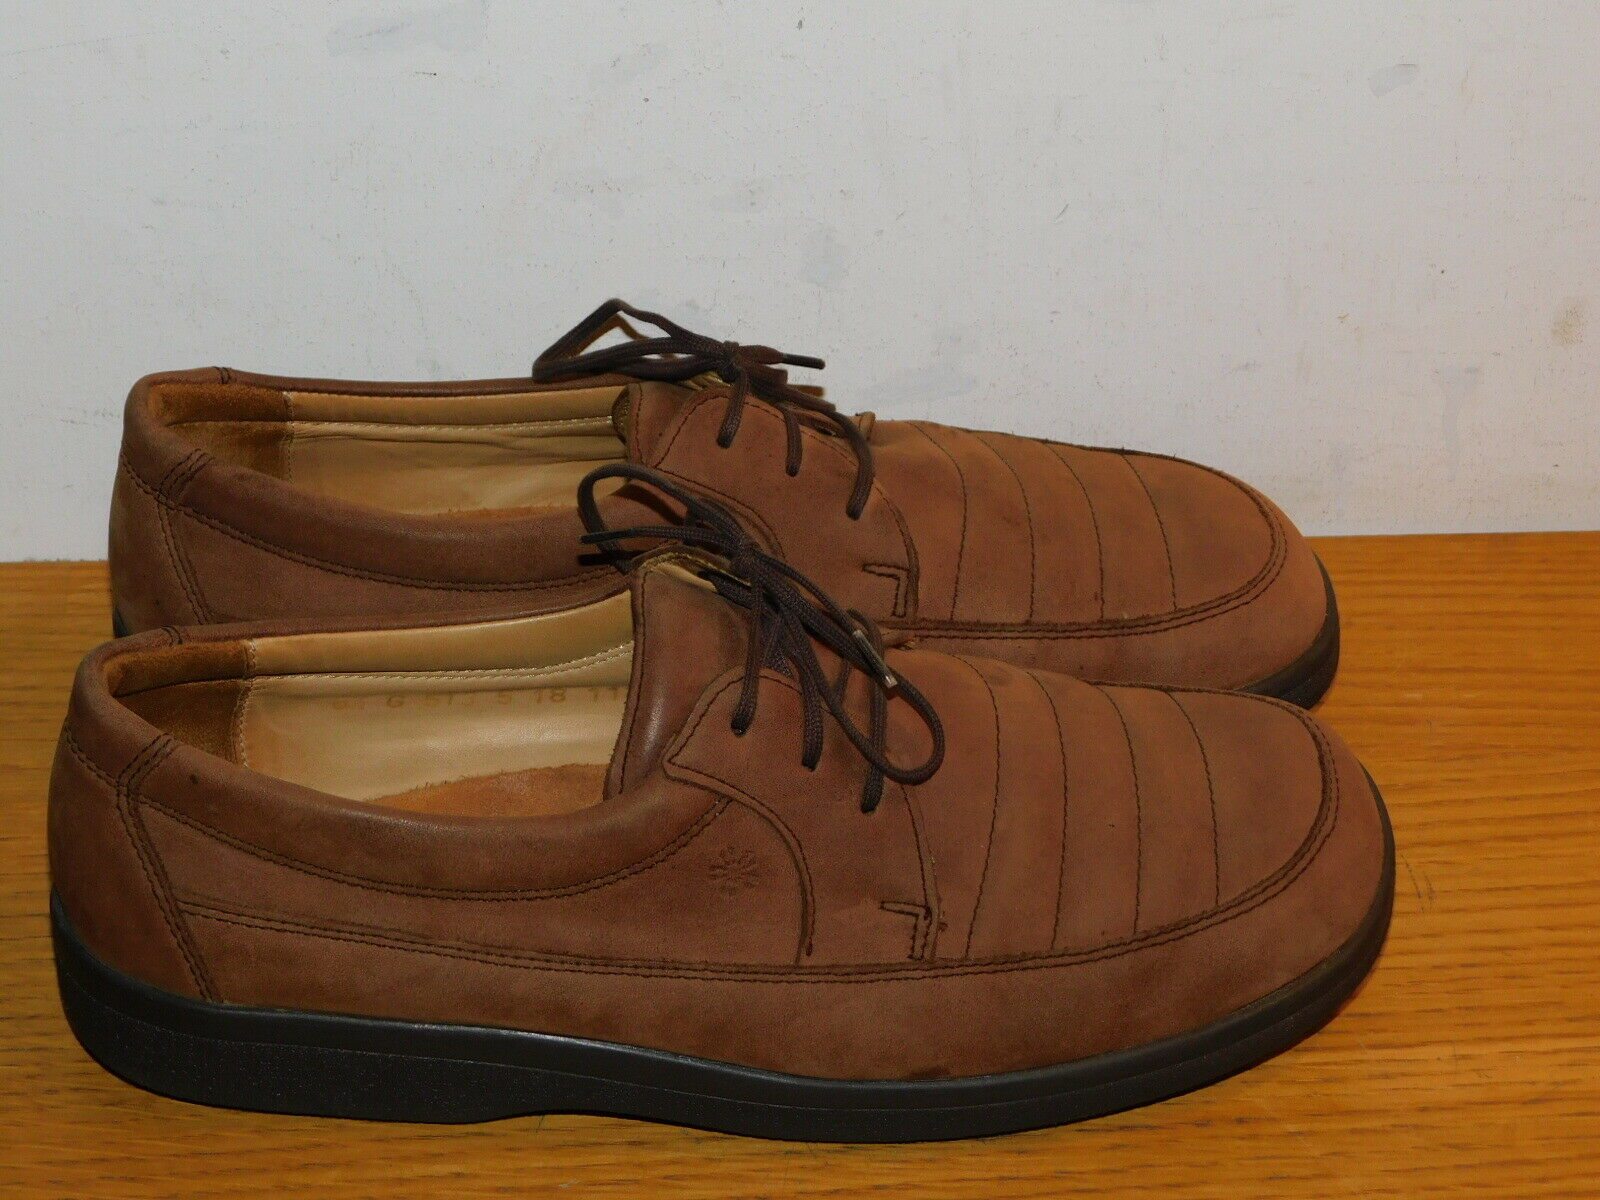 GANTER aktiv aktiv aktiv CHAUSSURE CUIR size 40 SIZE 6 1 2 UK 6.5 leather LEDER lady shoes 9b018a